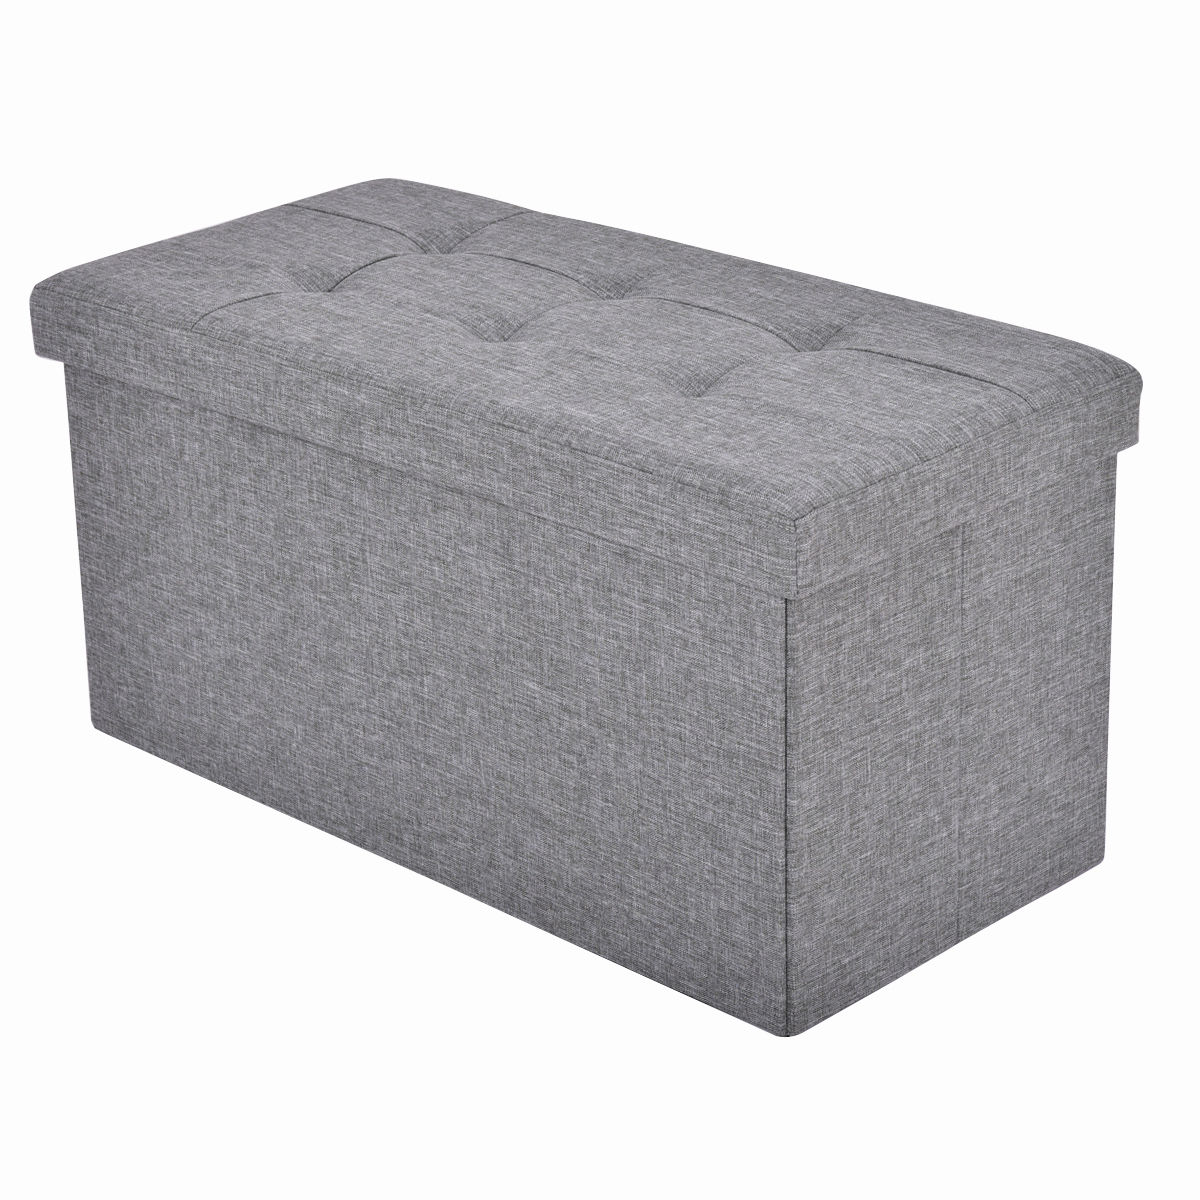 Peachy Folding Rect Ottoman Bench Storage Stool Box Footrest Furniture Decor Light Gray Gmtry Best Dining Table And Chair Ideas Images Gmtryco